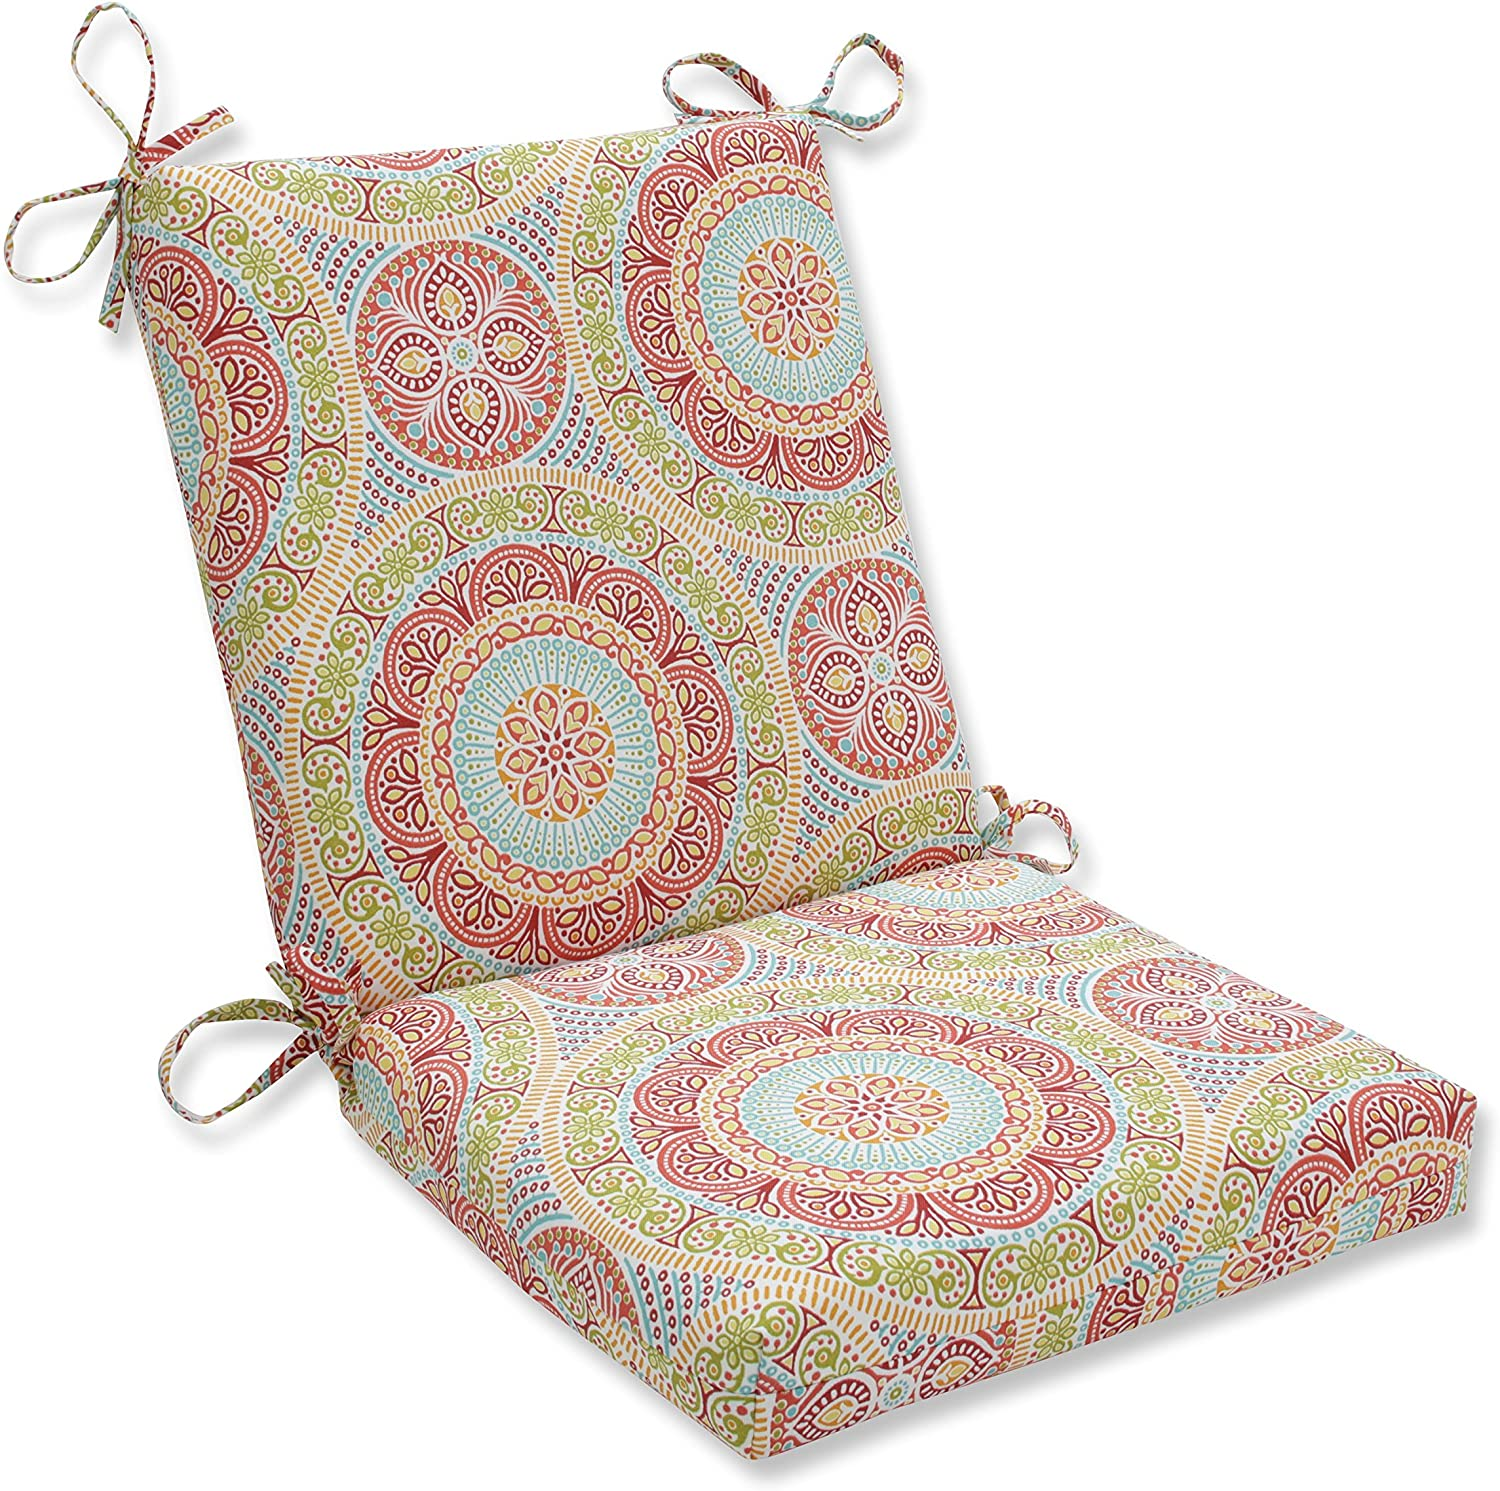 Pillow Perfect Outdoor Indoor Delancey Jubilee Squared Corners Chair Cushion